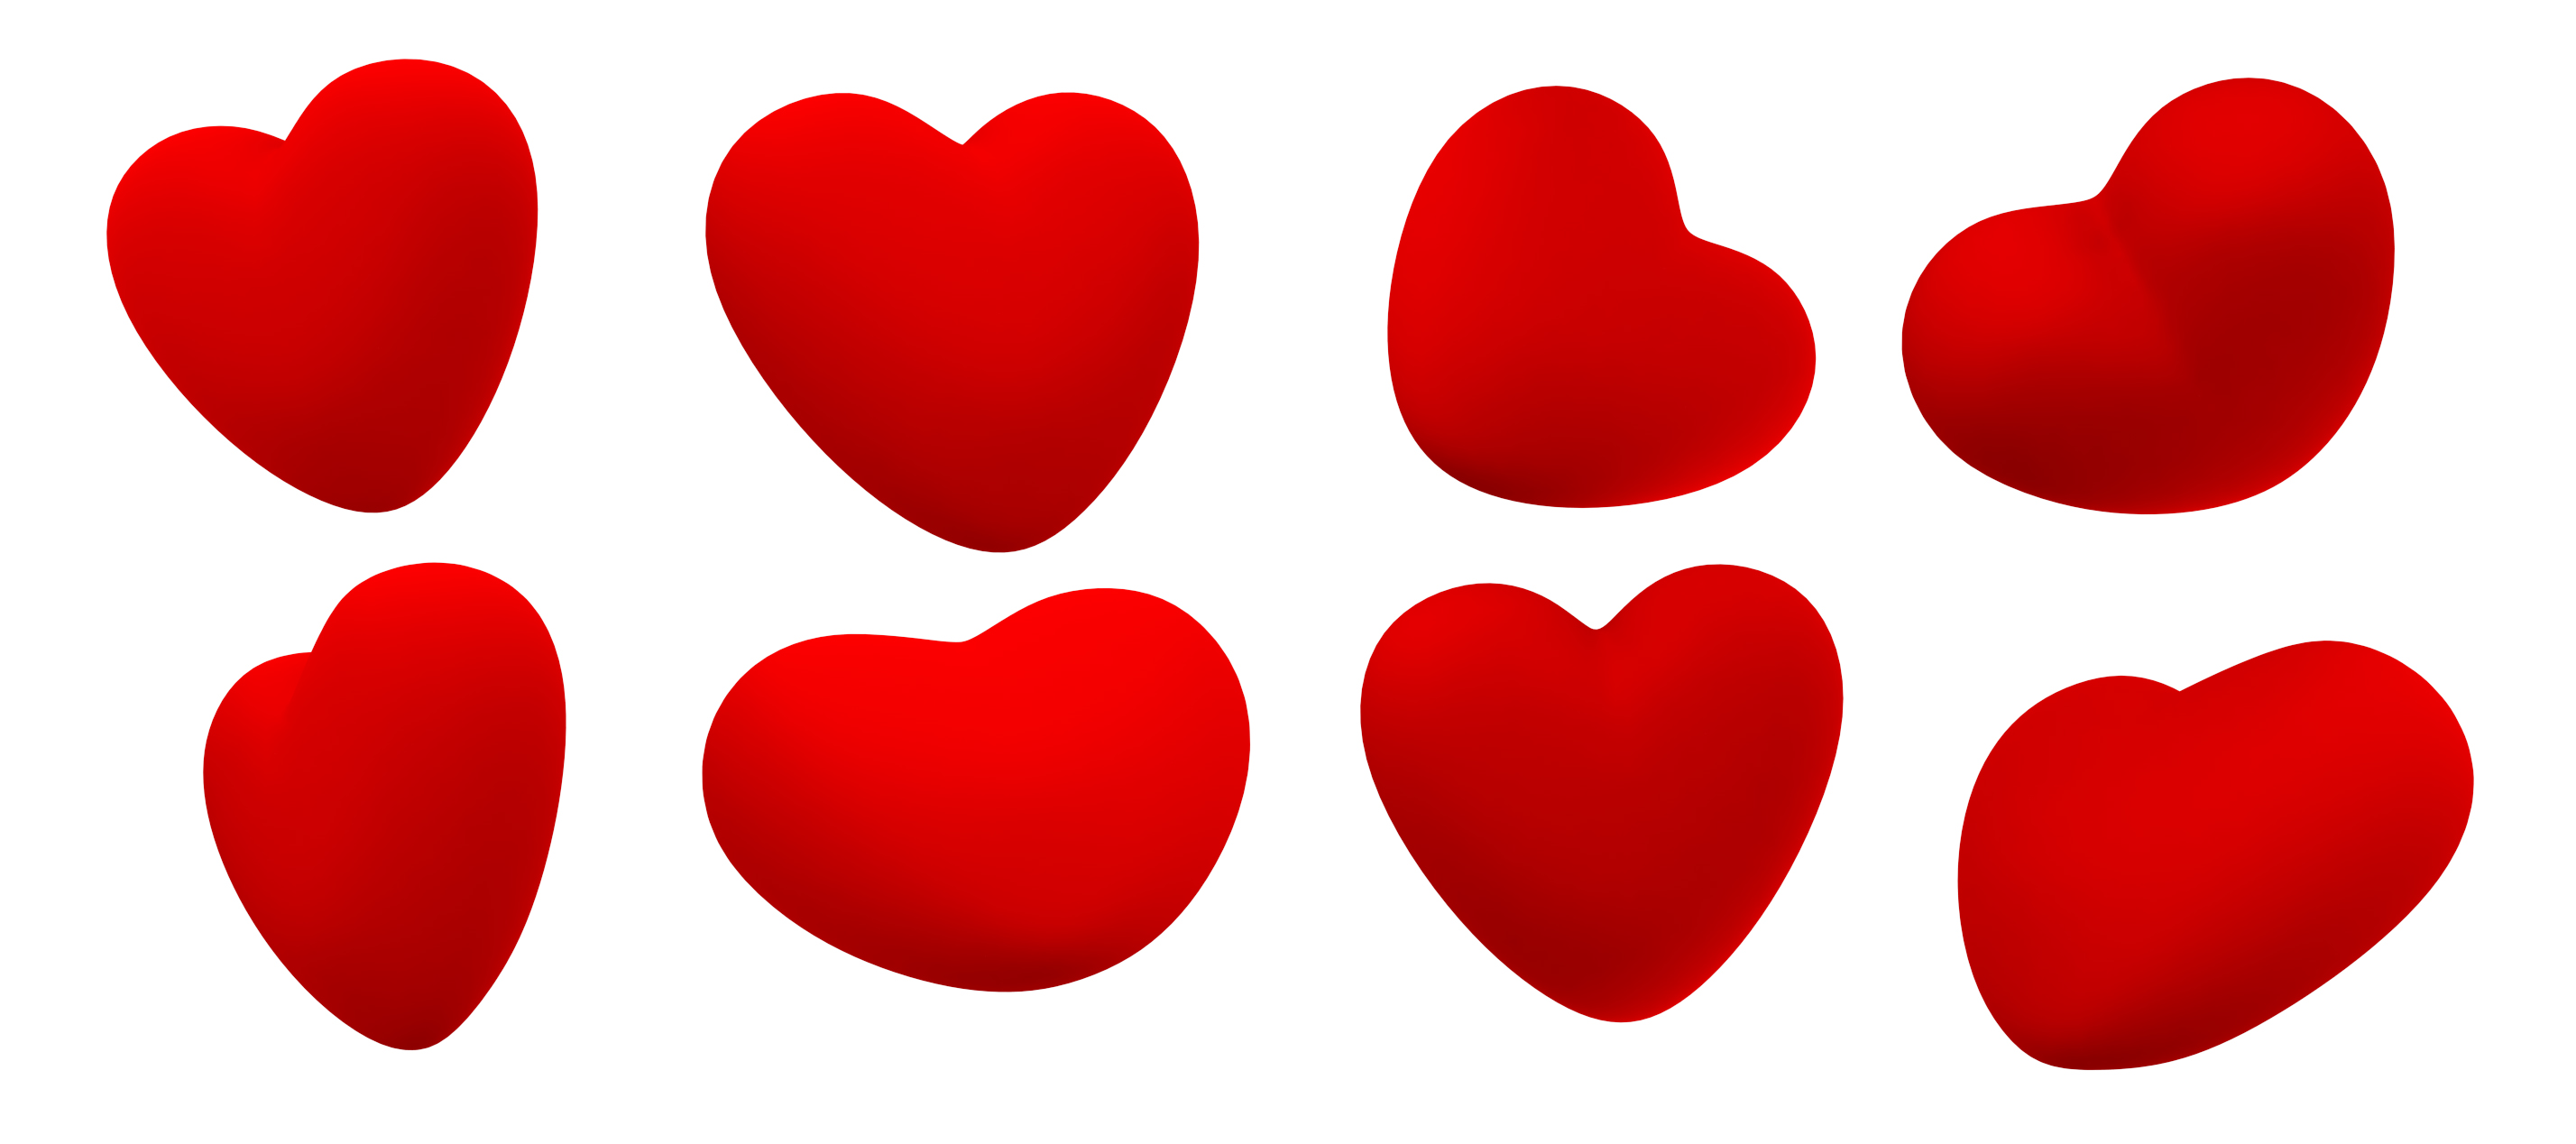 hearts download free